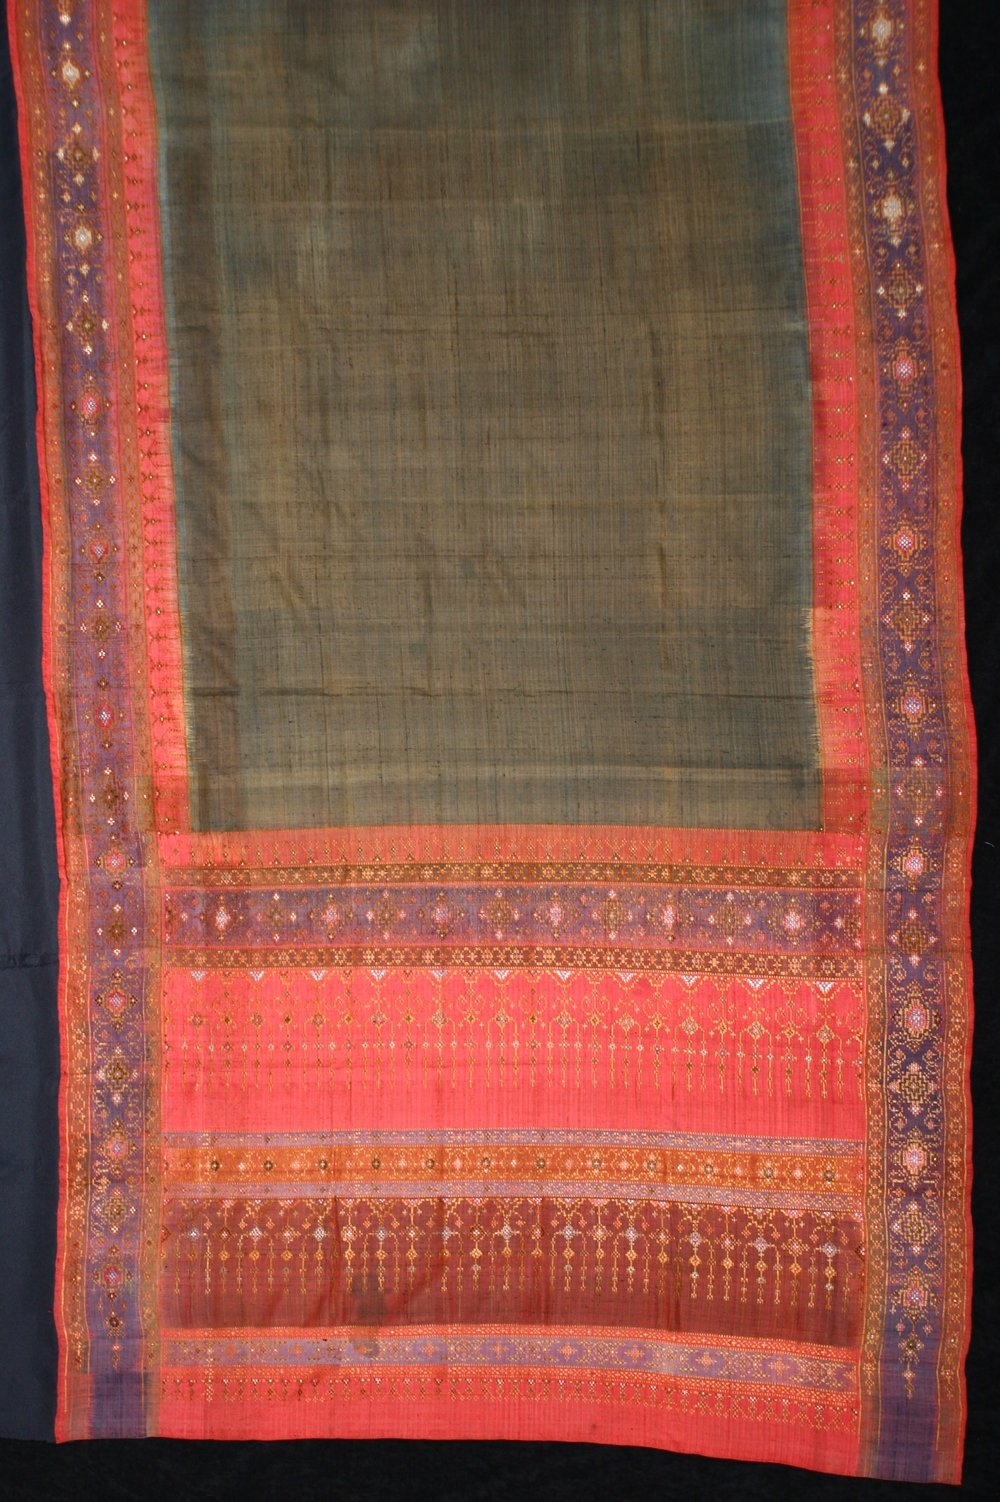 Silk hipwrapper, Nakhon Si Thammarat, Malay Peninsula, 19th century.